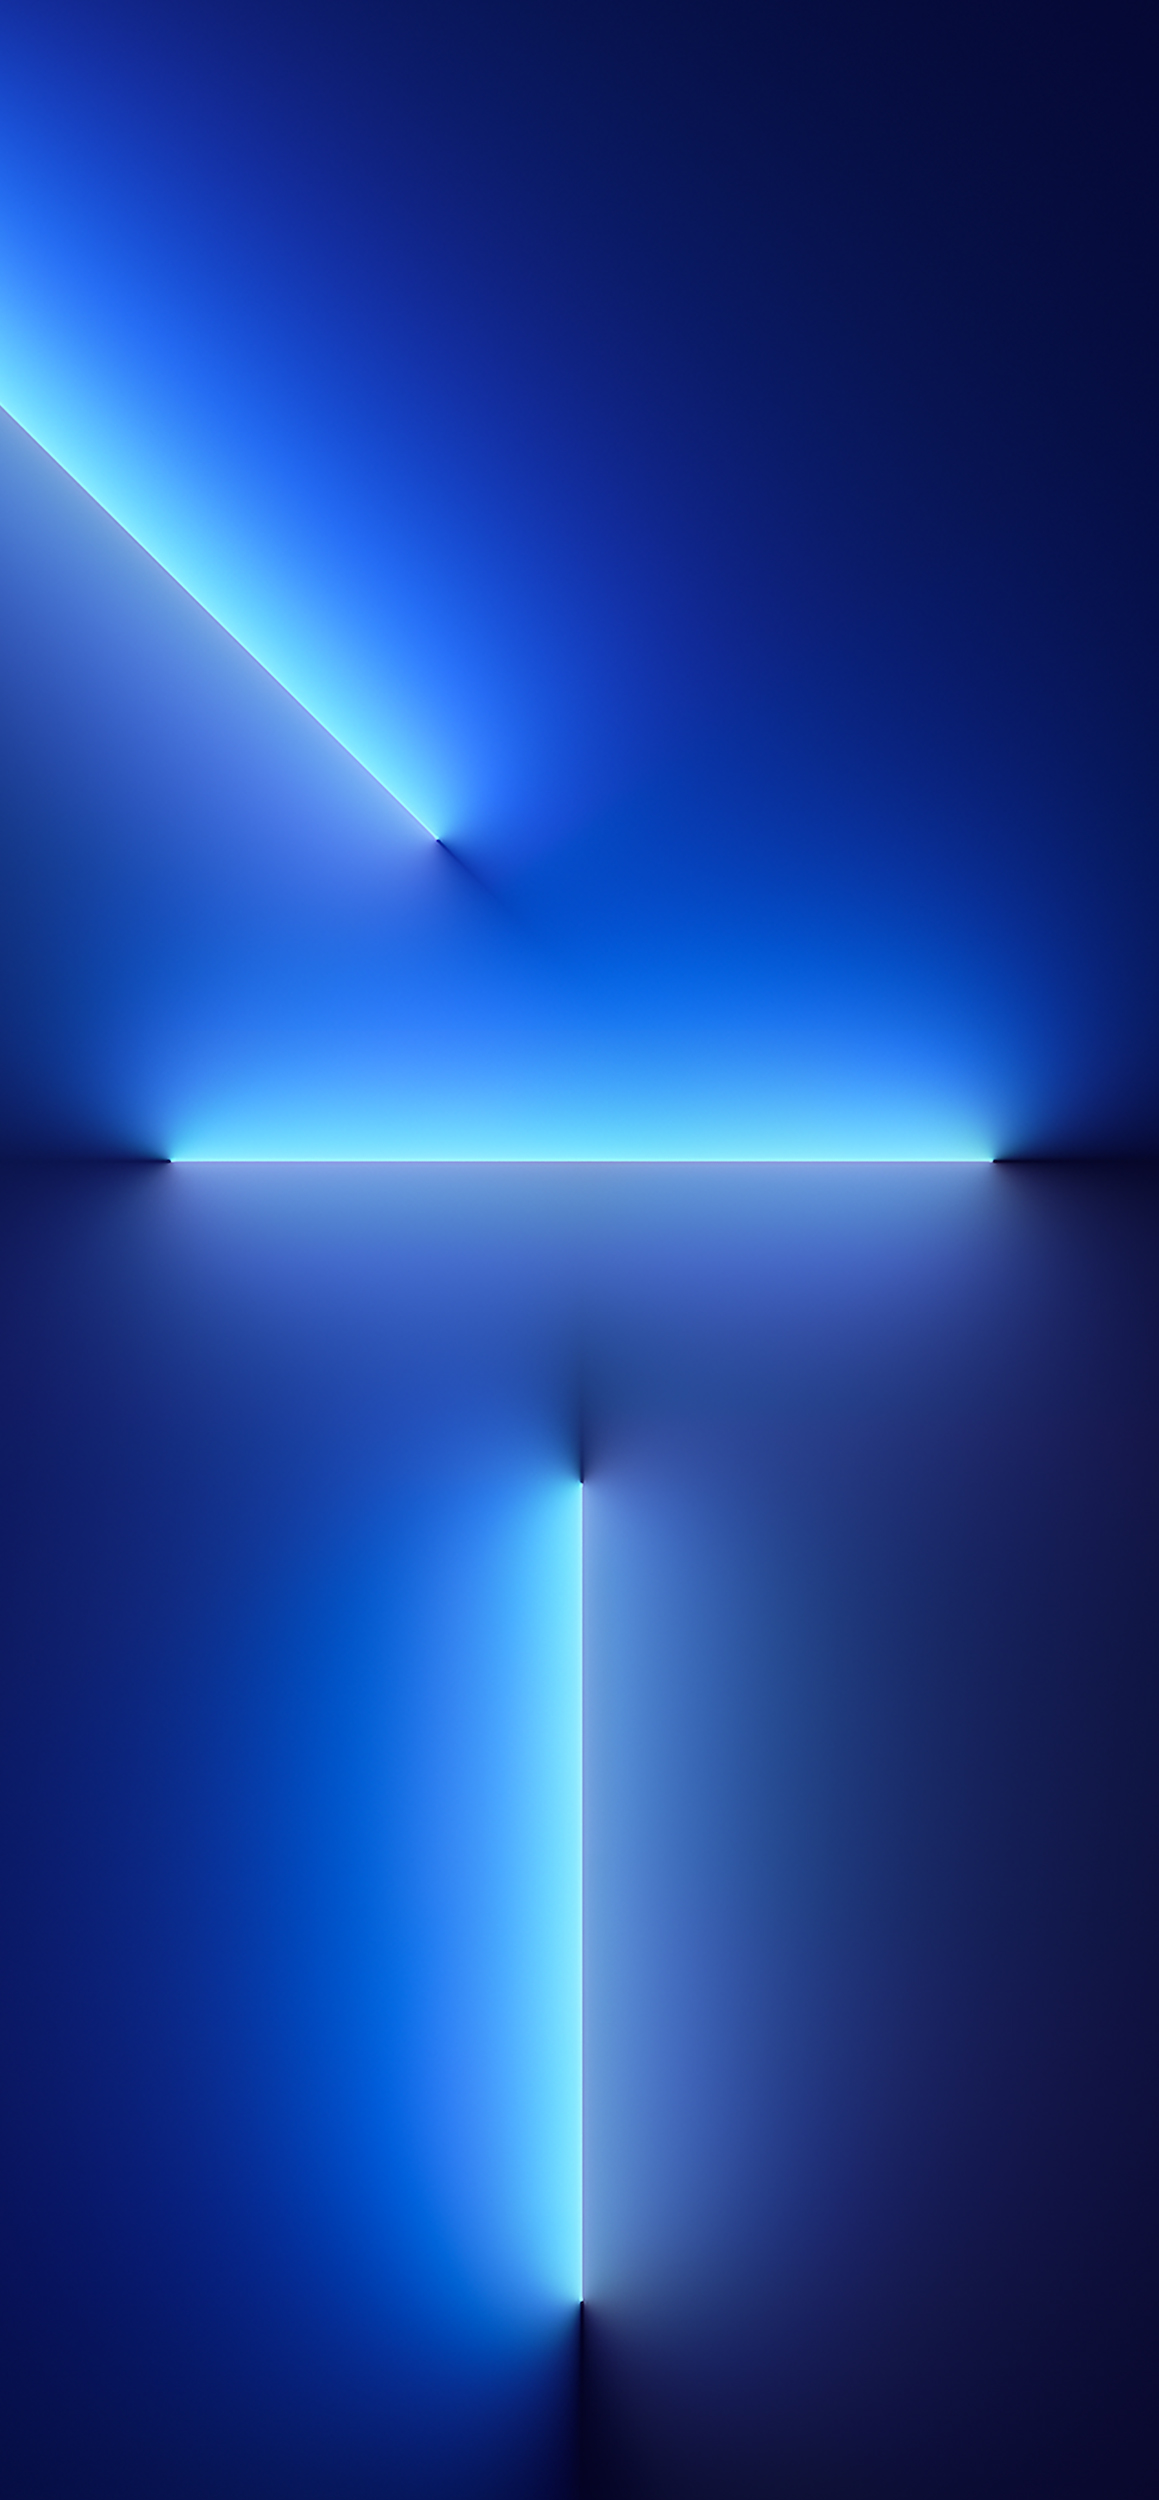 IPhone 13 Pro Wallpaper In Blue Lights